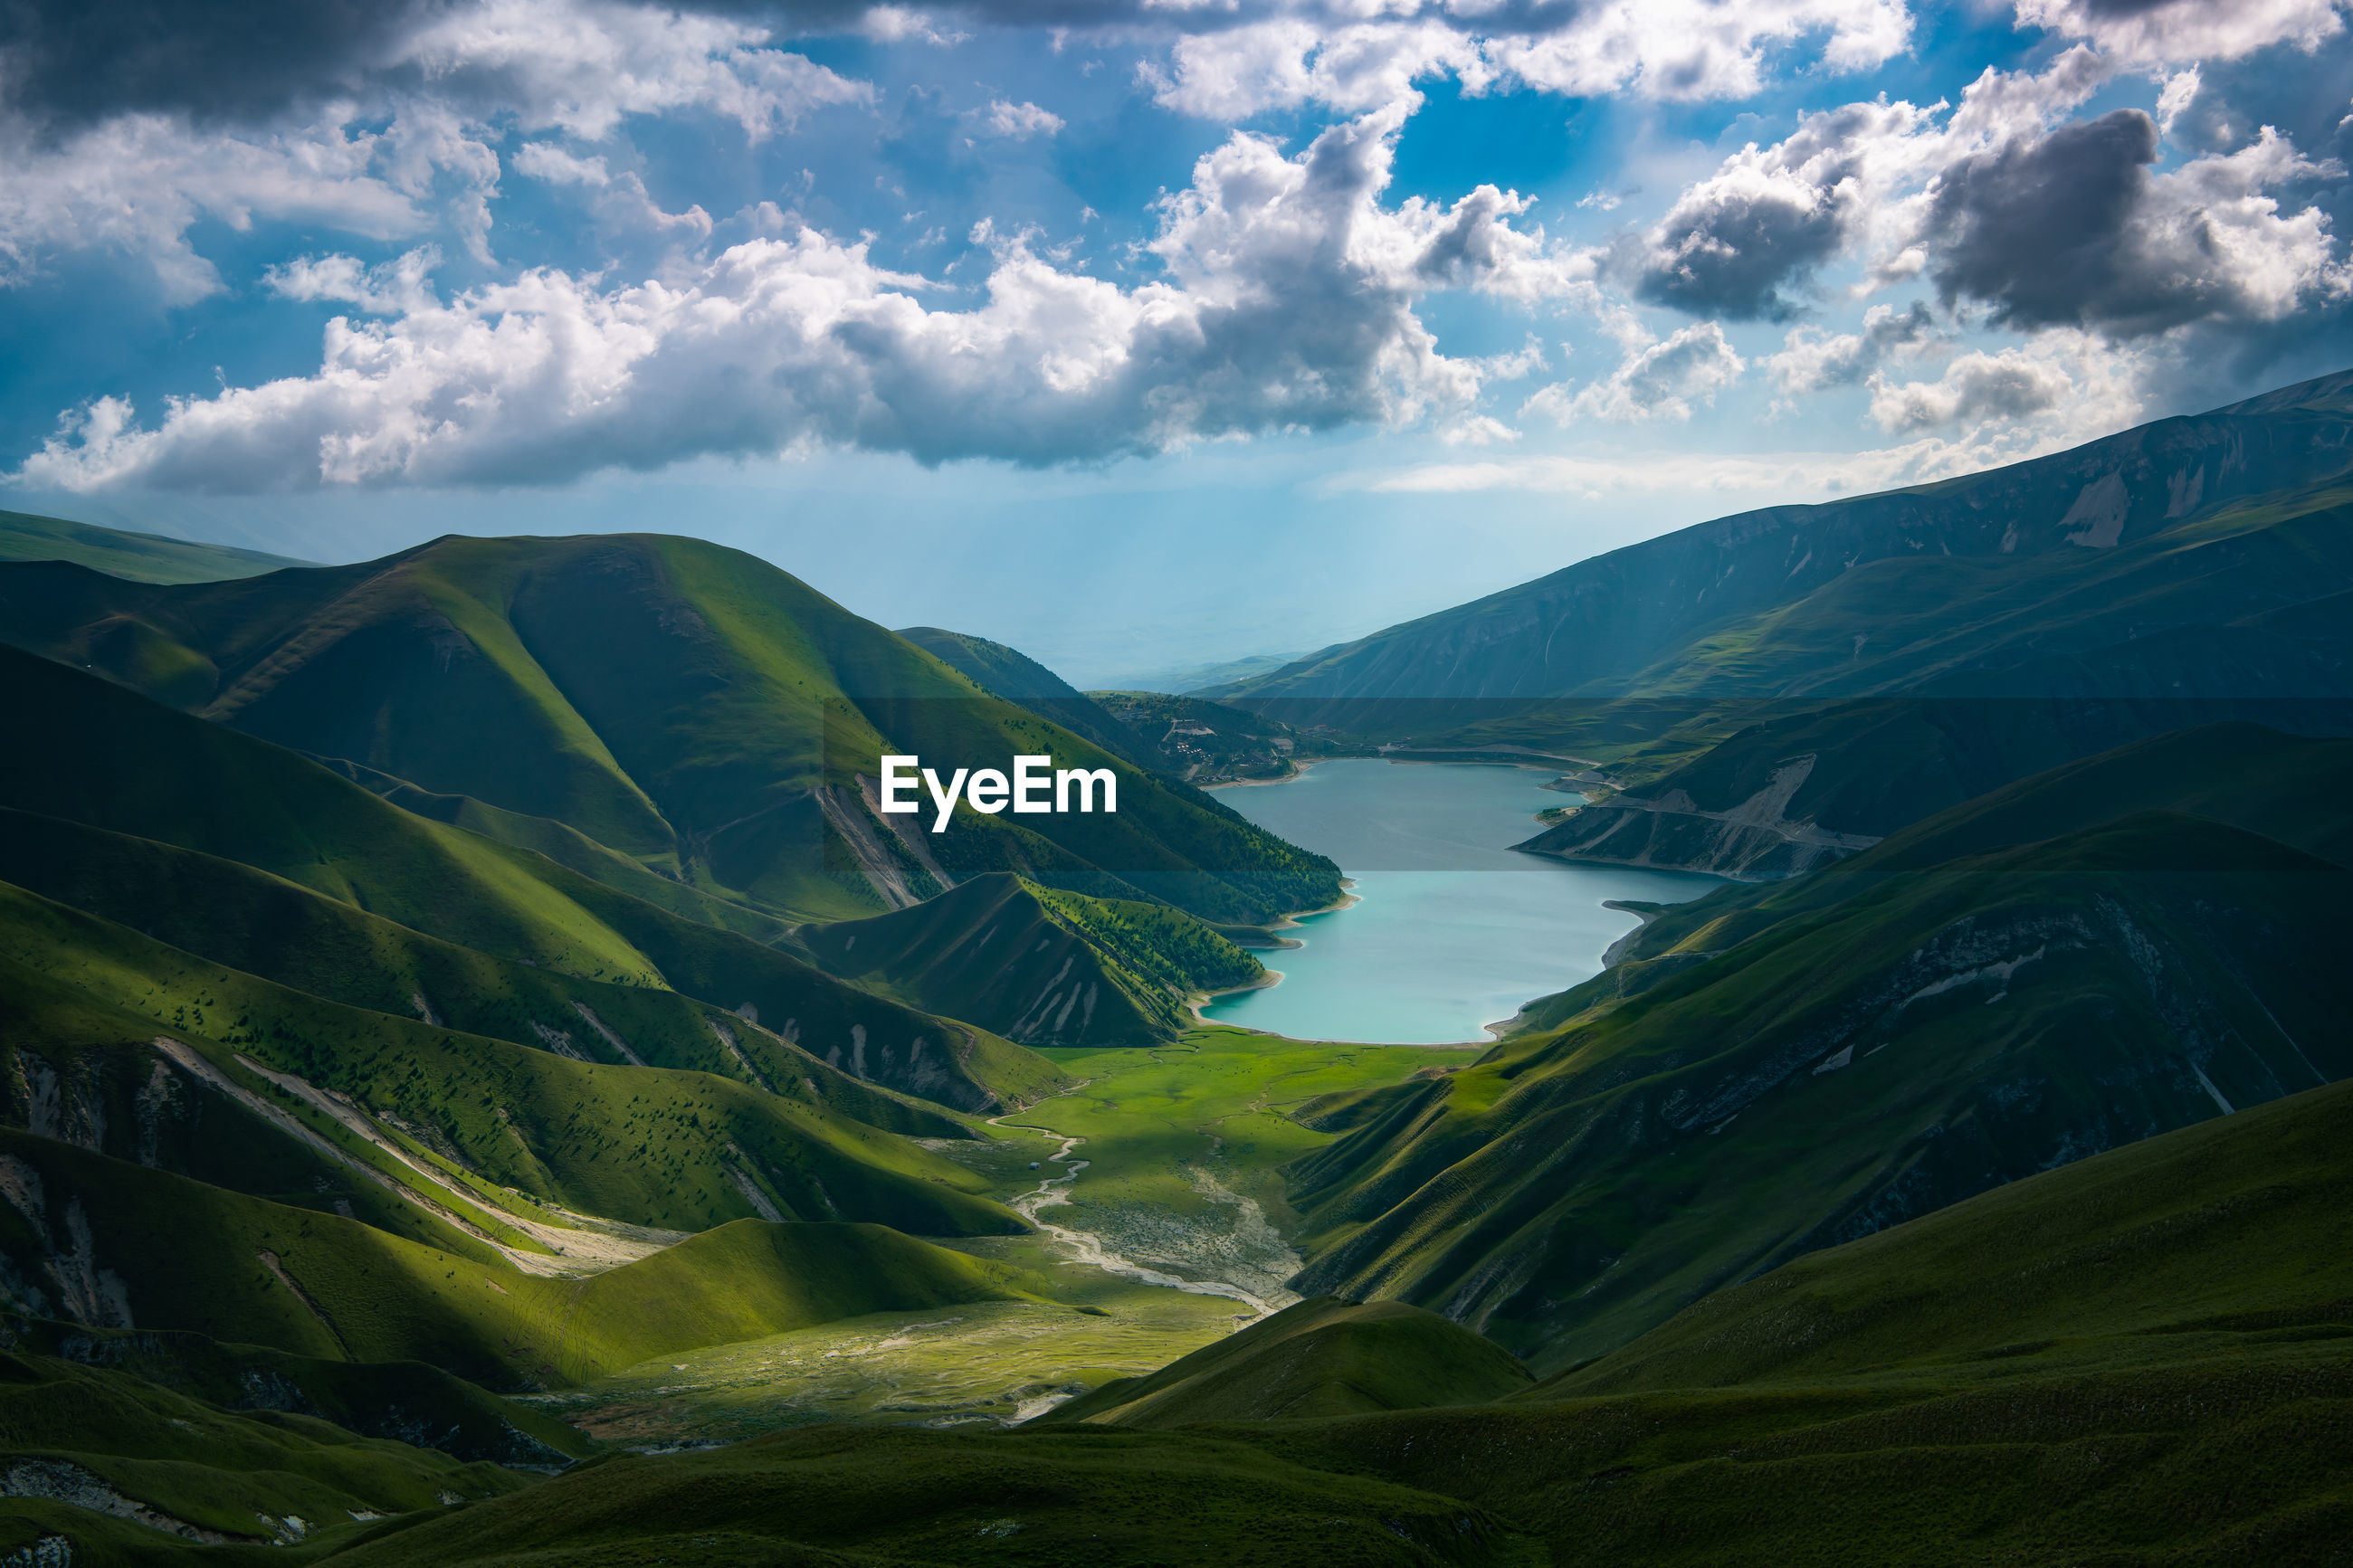 Lake kezenoy am in chechnya. scenic view of mountains against sky.